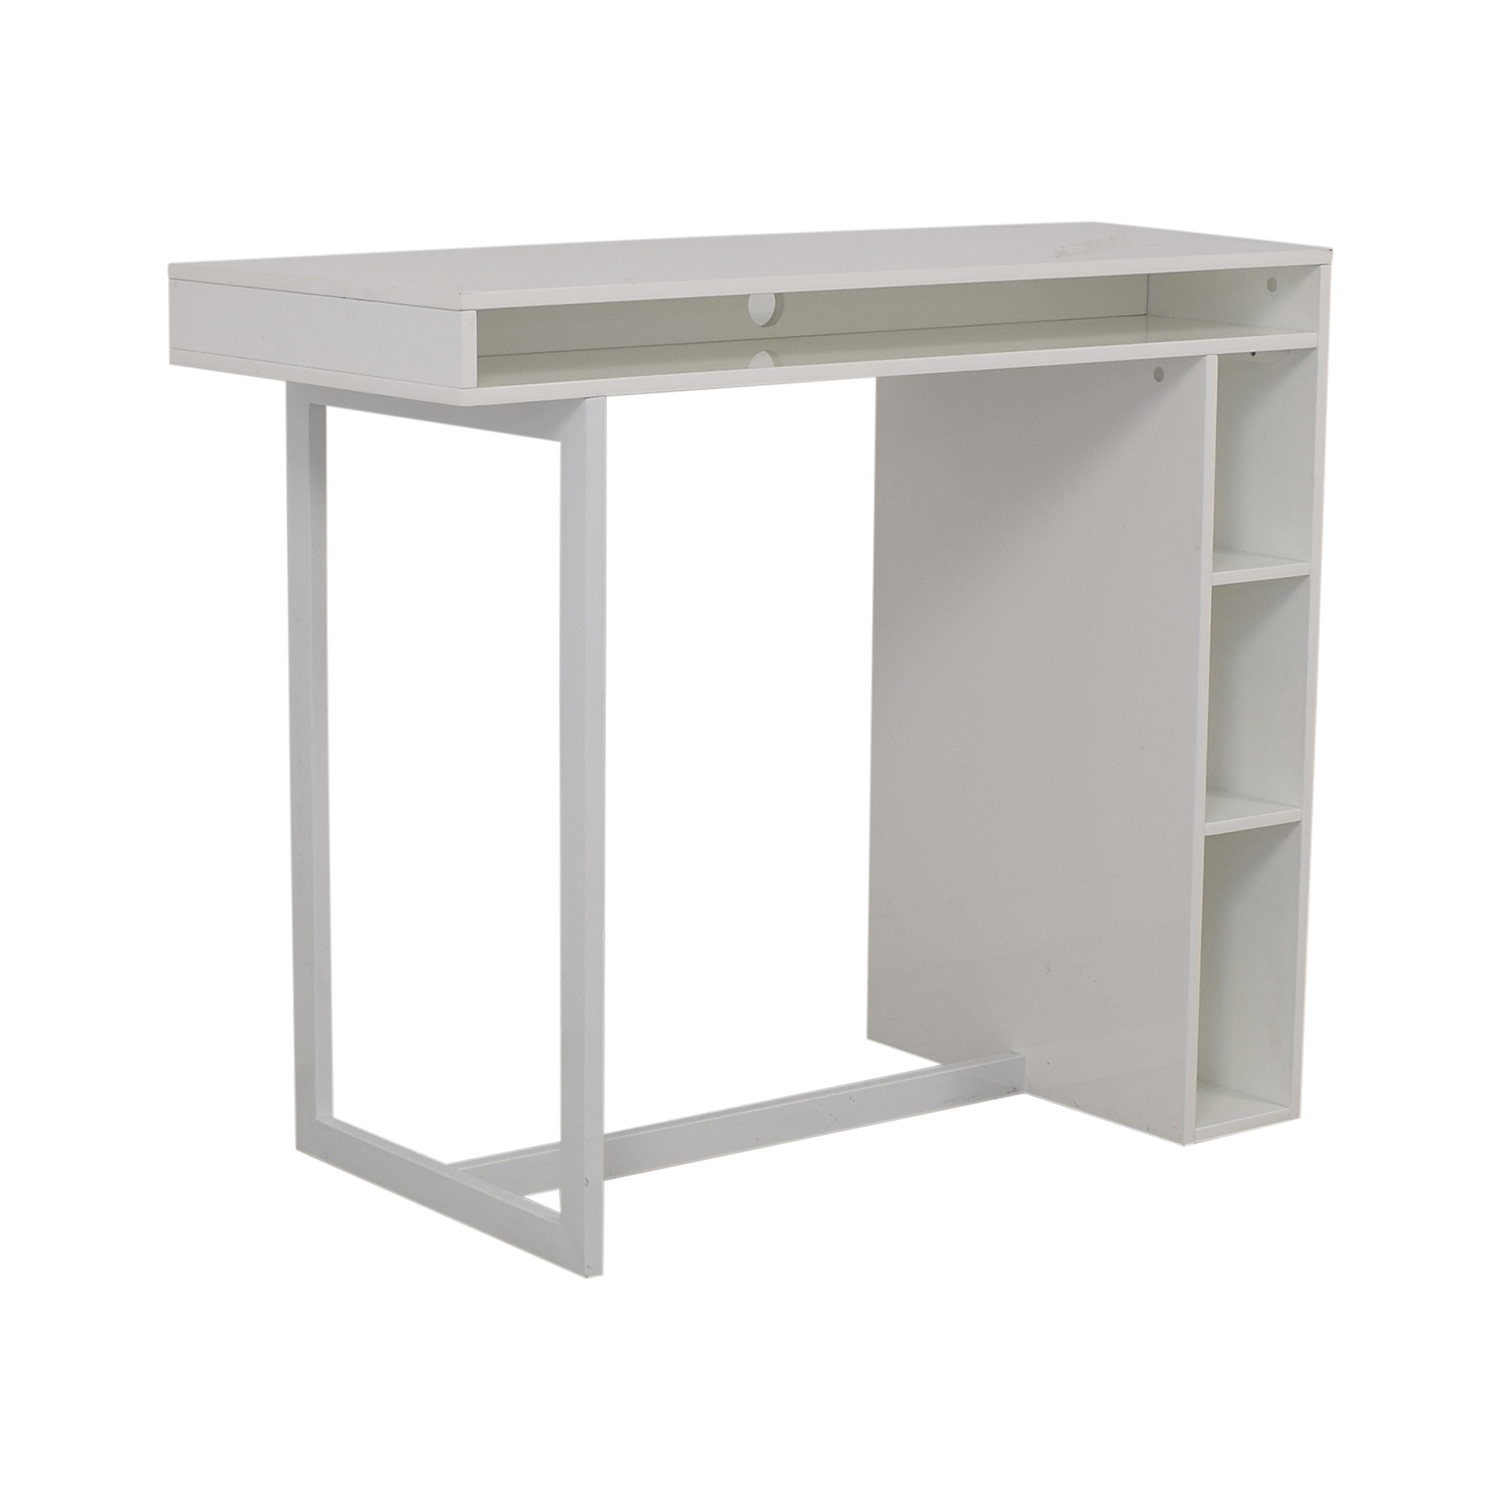 shop CB2 CB2 Public White Counter Dining Table online